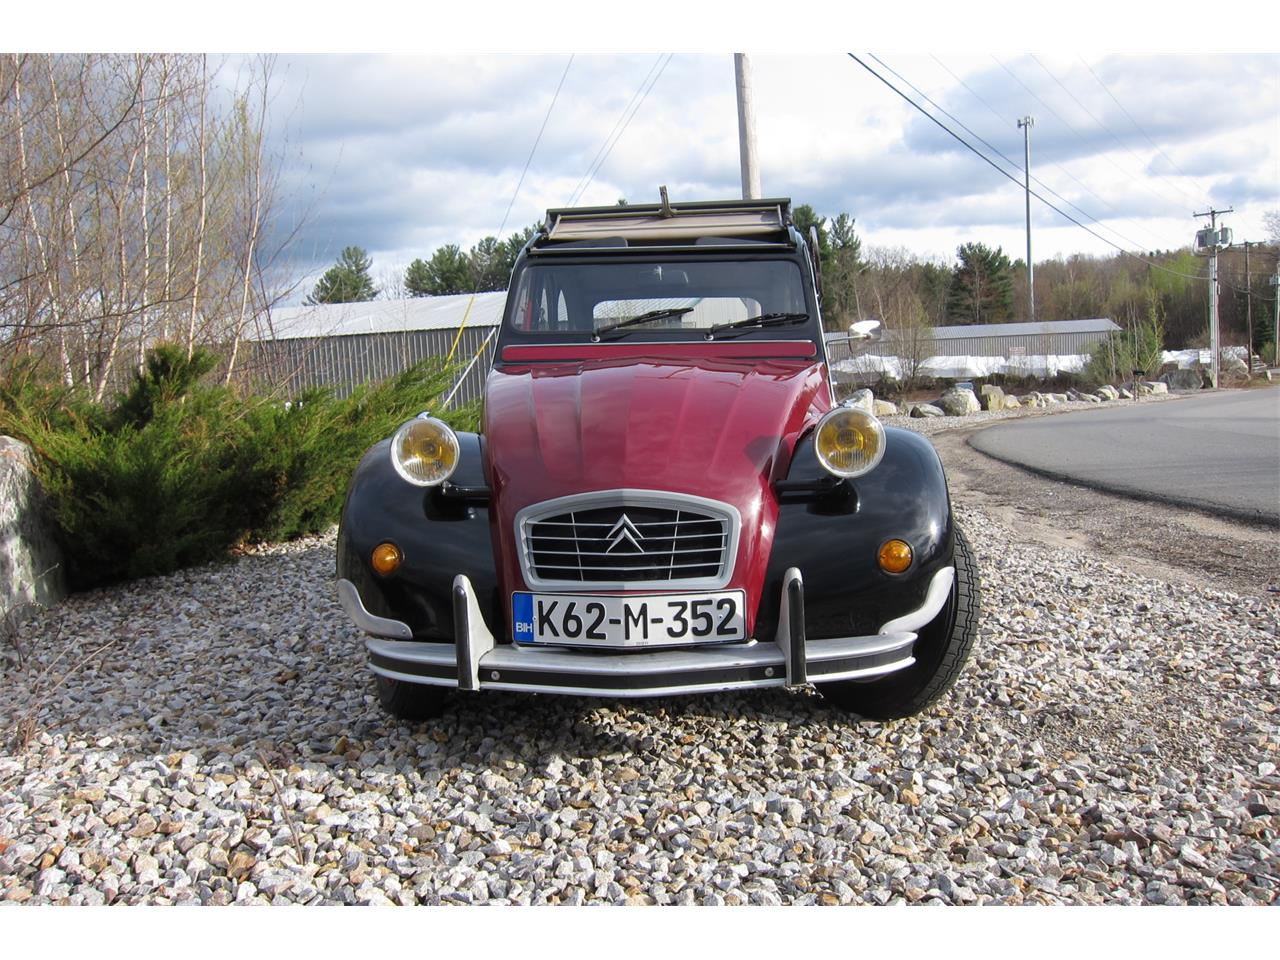 Large Picture of '90 Citroen 2CV located in Hampstead New Hampshire Auction Vehicle - Q42X